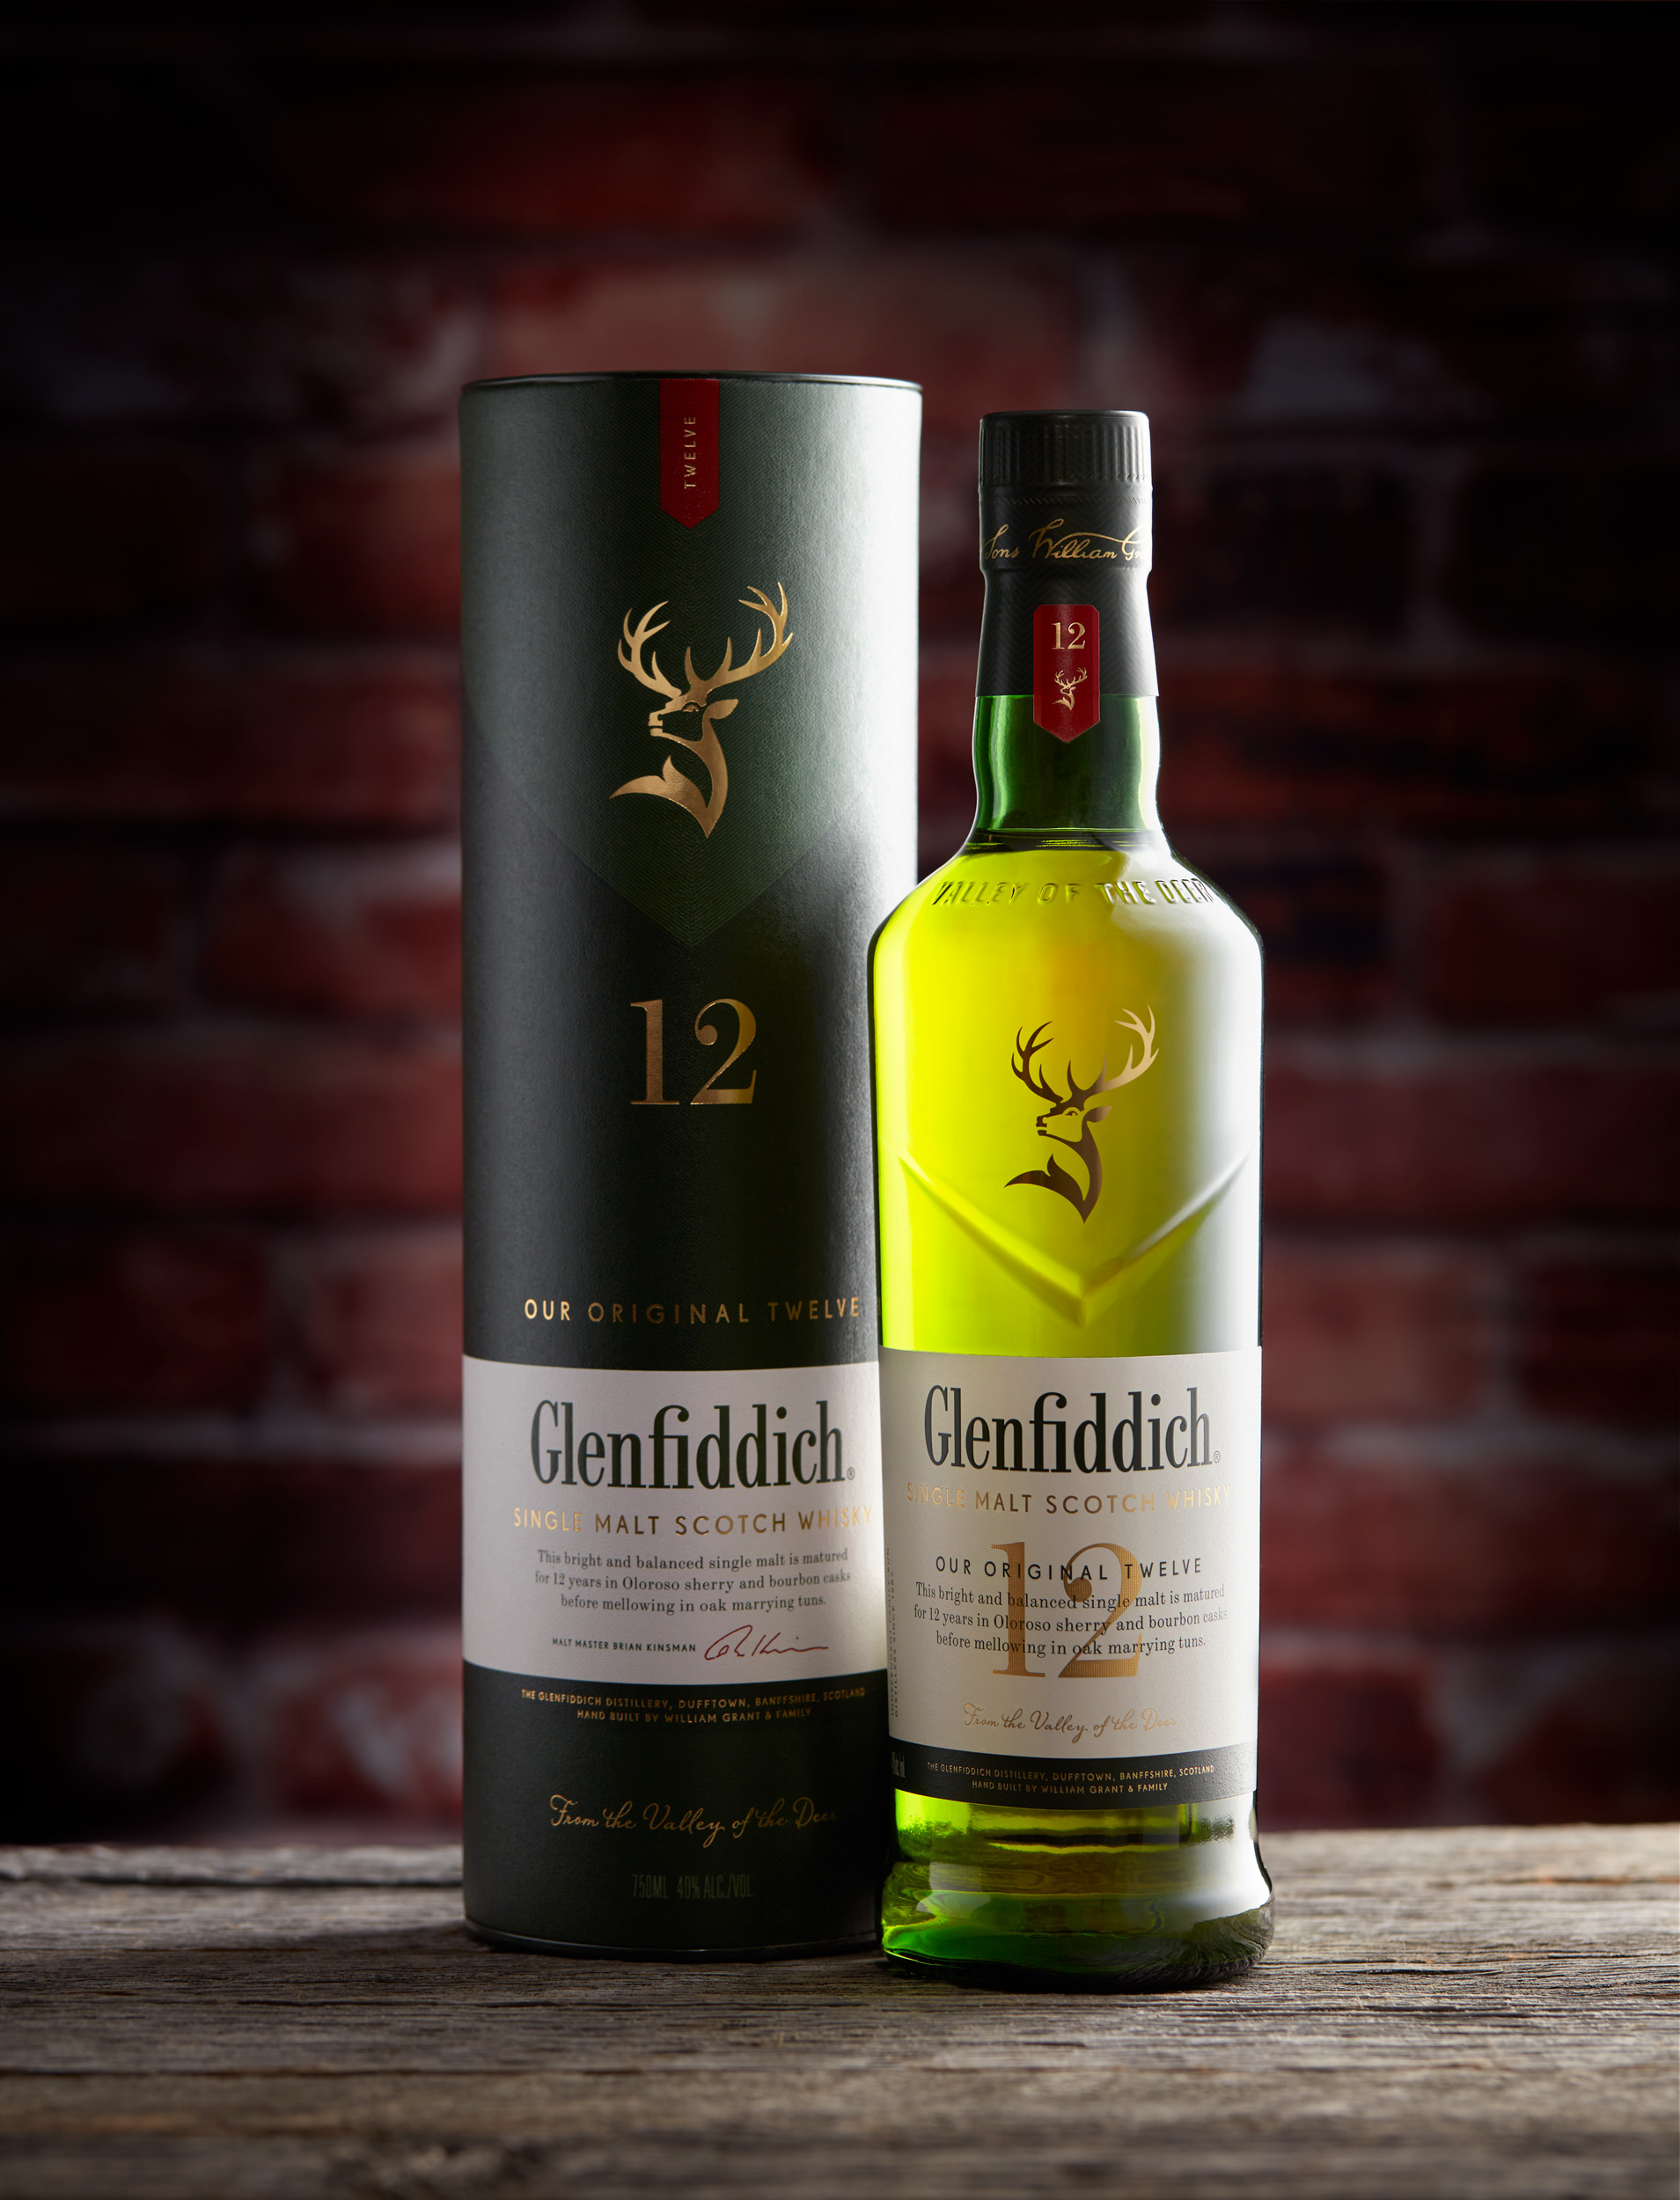 Studio product photo of a Glenfiddich Scotch Whiskey bottle and packaging.